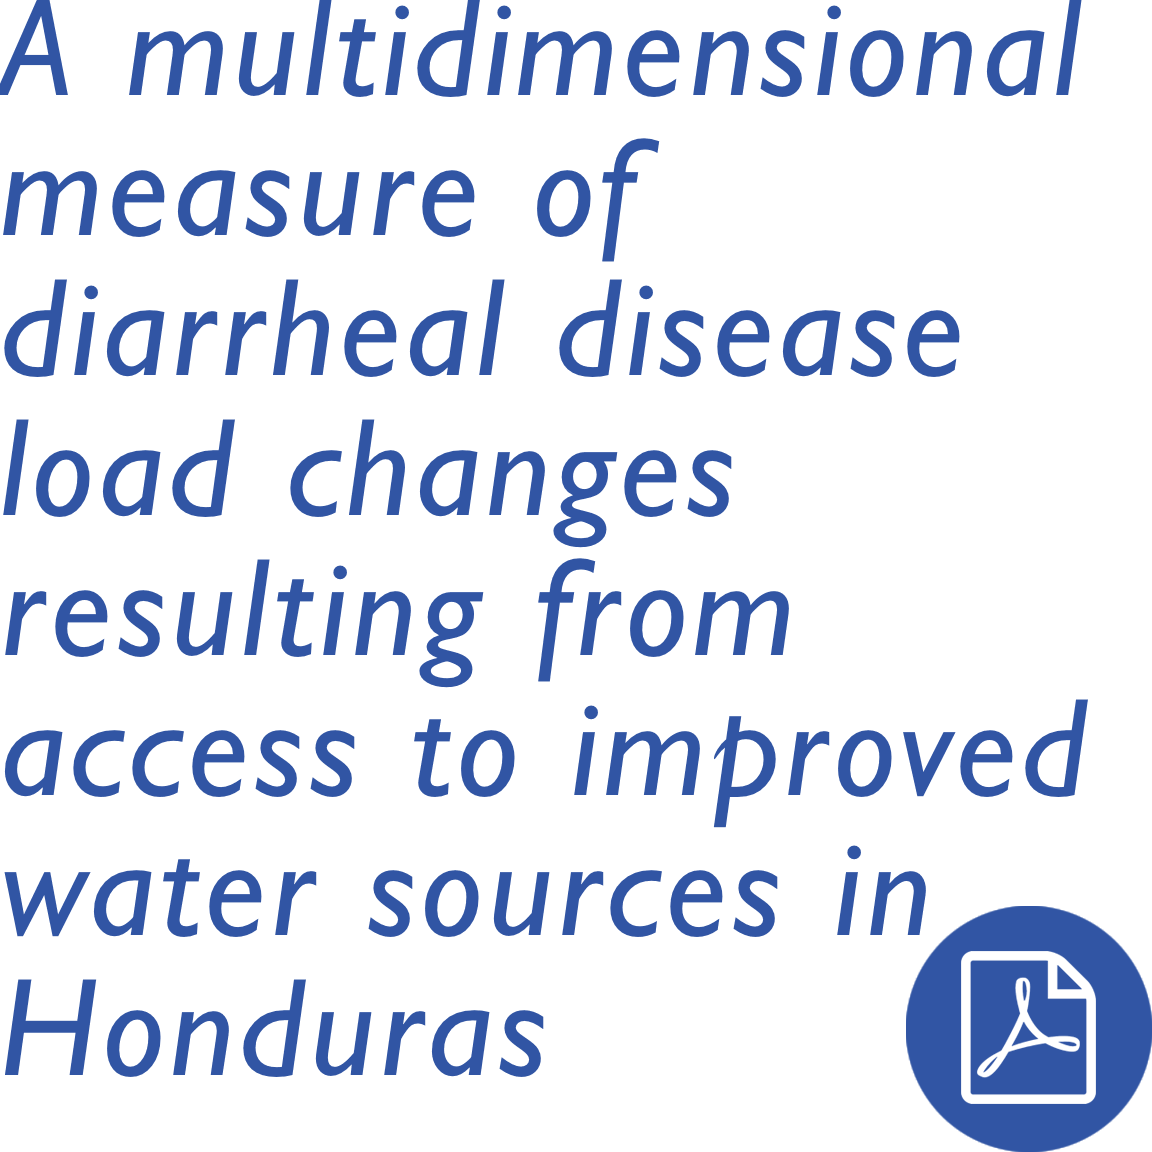 A multidimensional measure of diarrheal disease load changes resulting from access to improved water sources in Honduras